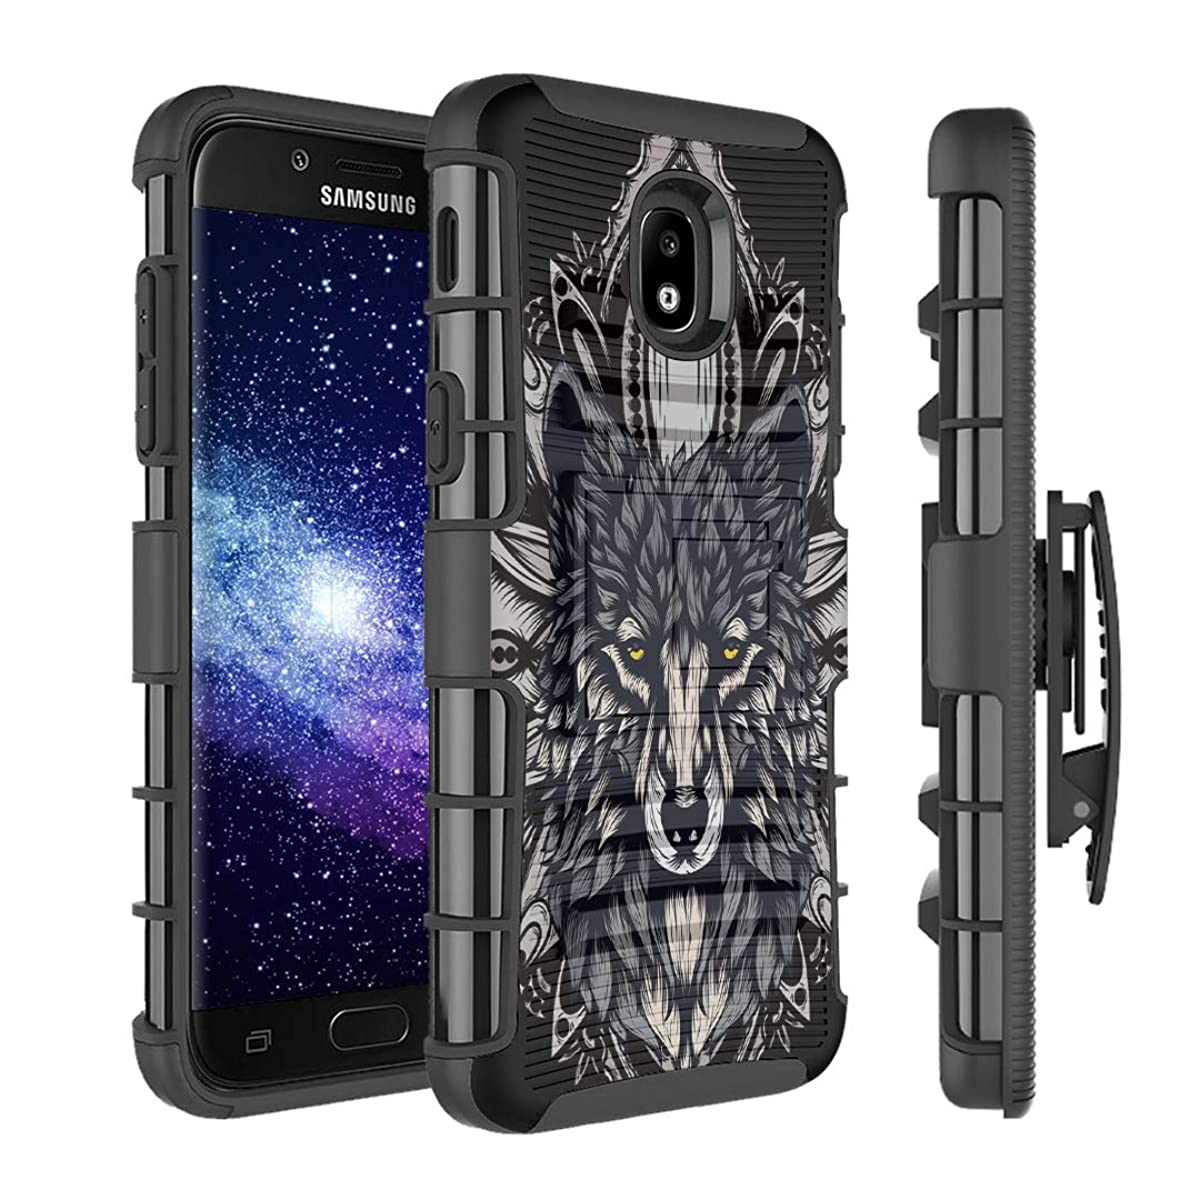 Capsule Case Compatible with Samsung Galaxy J7 2018 (J737), J7 Star, J7 Aero, J7 Refine, J7V 2nd Gen, J7 Crown, J7 Eon [Armor Kickstand Holster Combo Case Black] - (Wolf)